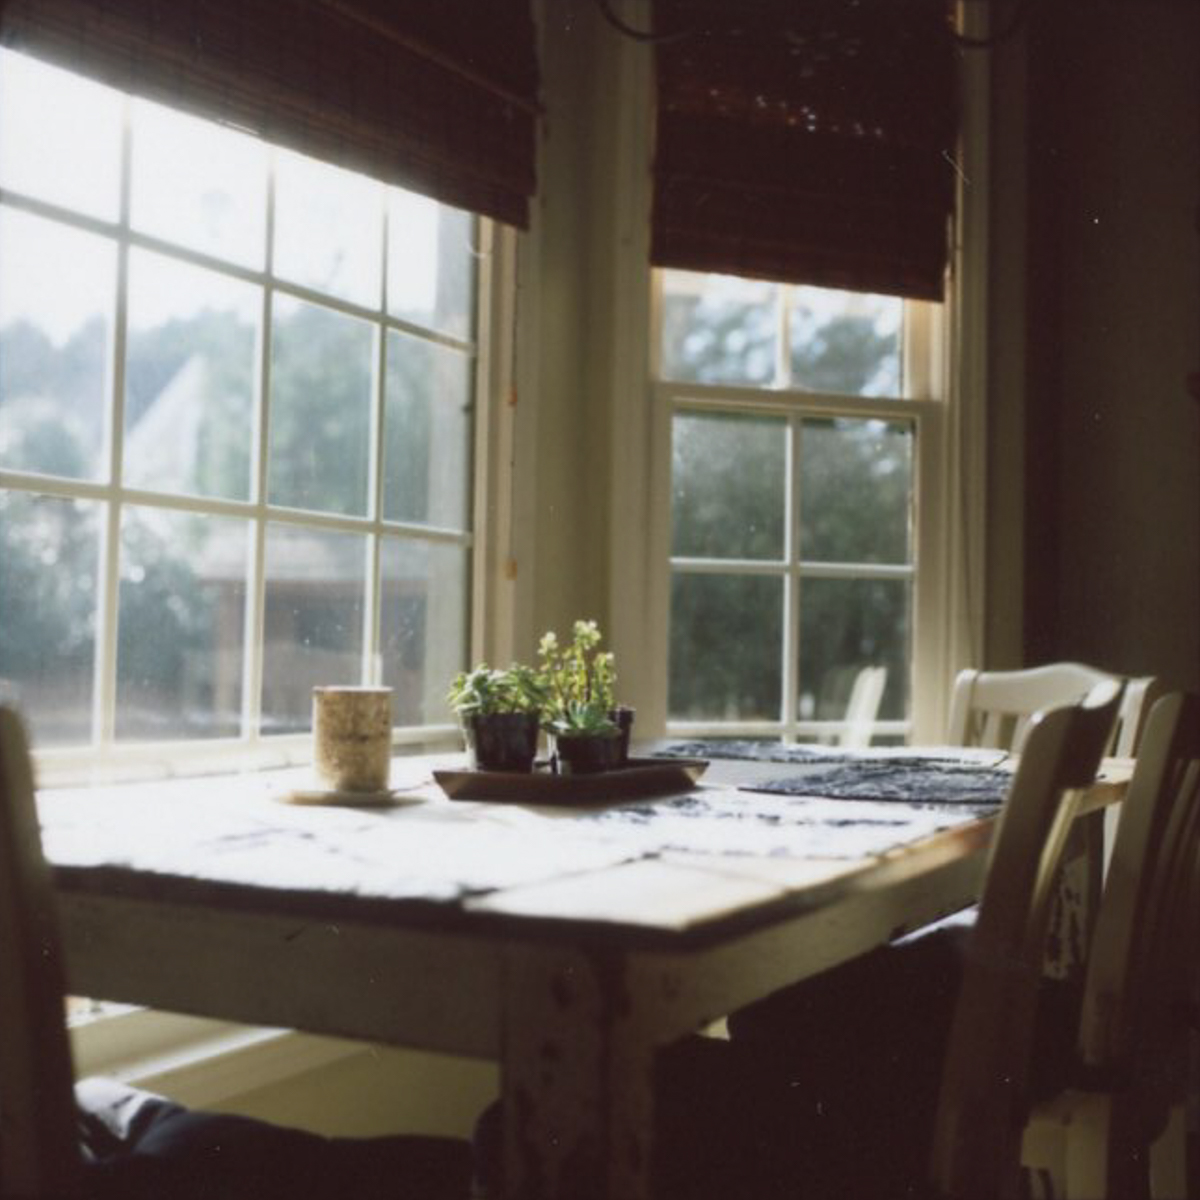 Mornings on the Table | Hasselblad 500c | Fuji FP 100c Film | Azzari Jarrett